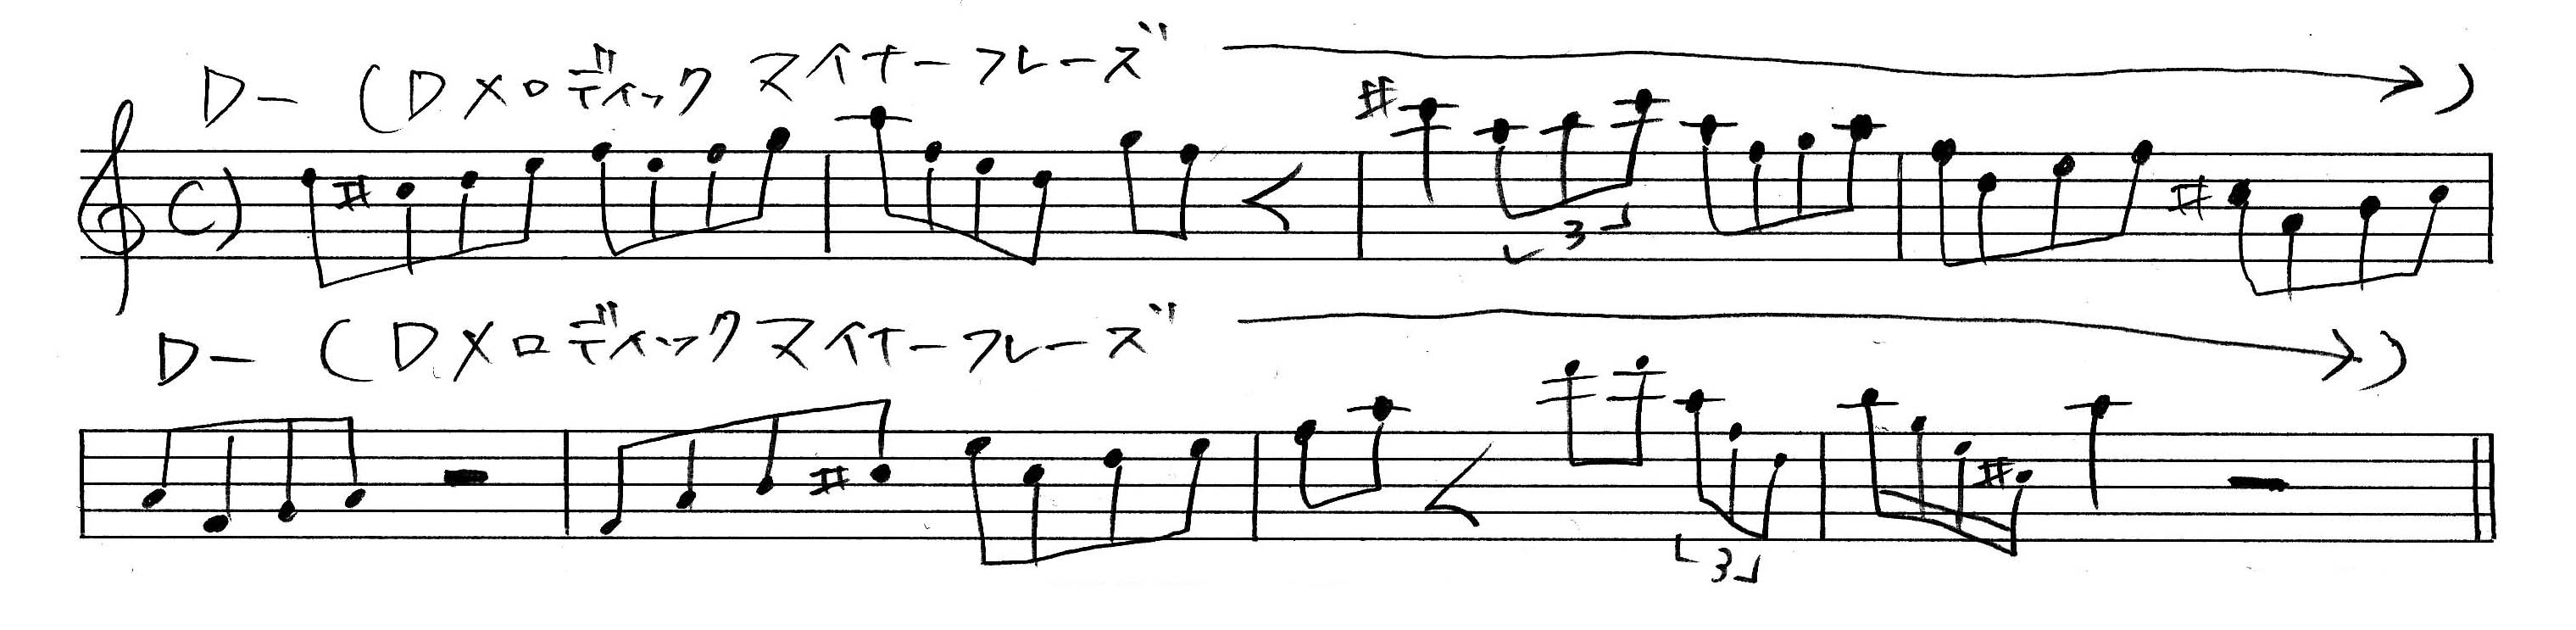 a7-dmelodic-minor